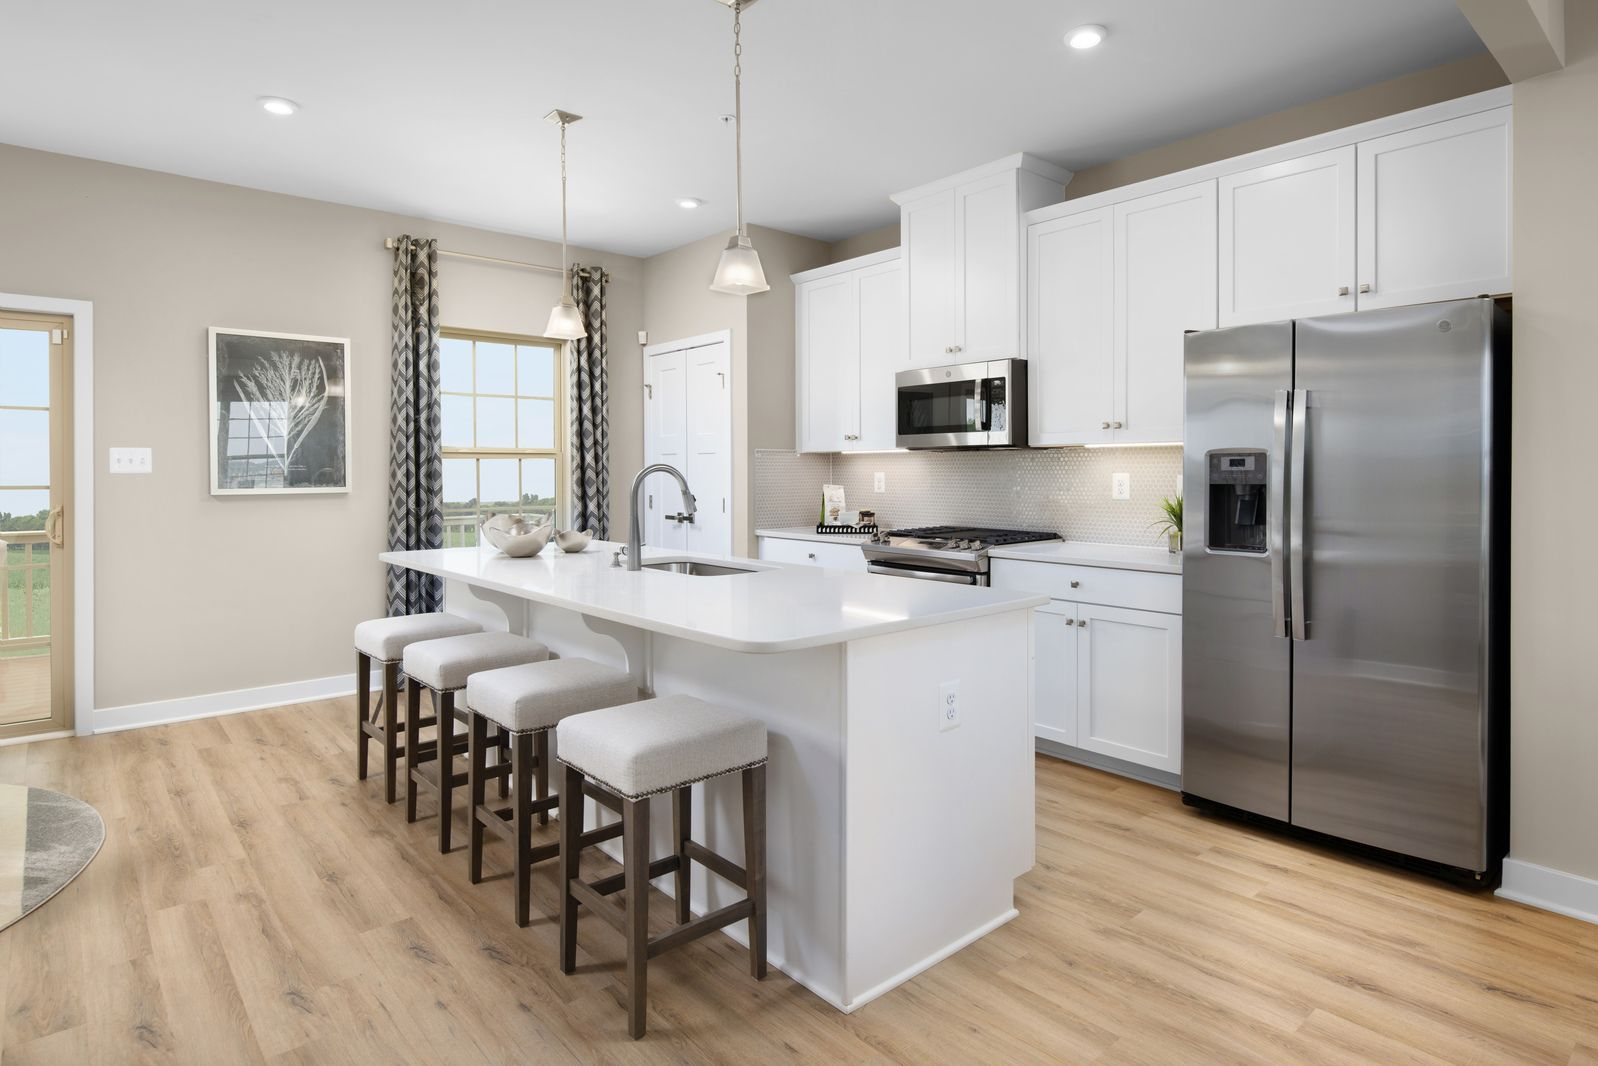 WELCOME TO LAKE LINGANORE HAMPTONS:Now Open! Own a townhome in Lake Linganore's newest neighborhood from the mid $300s. Two new models to tour.Schedule your 1-1 in person or virtual visit today!